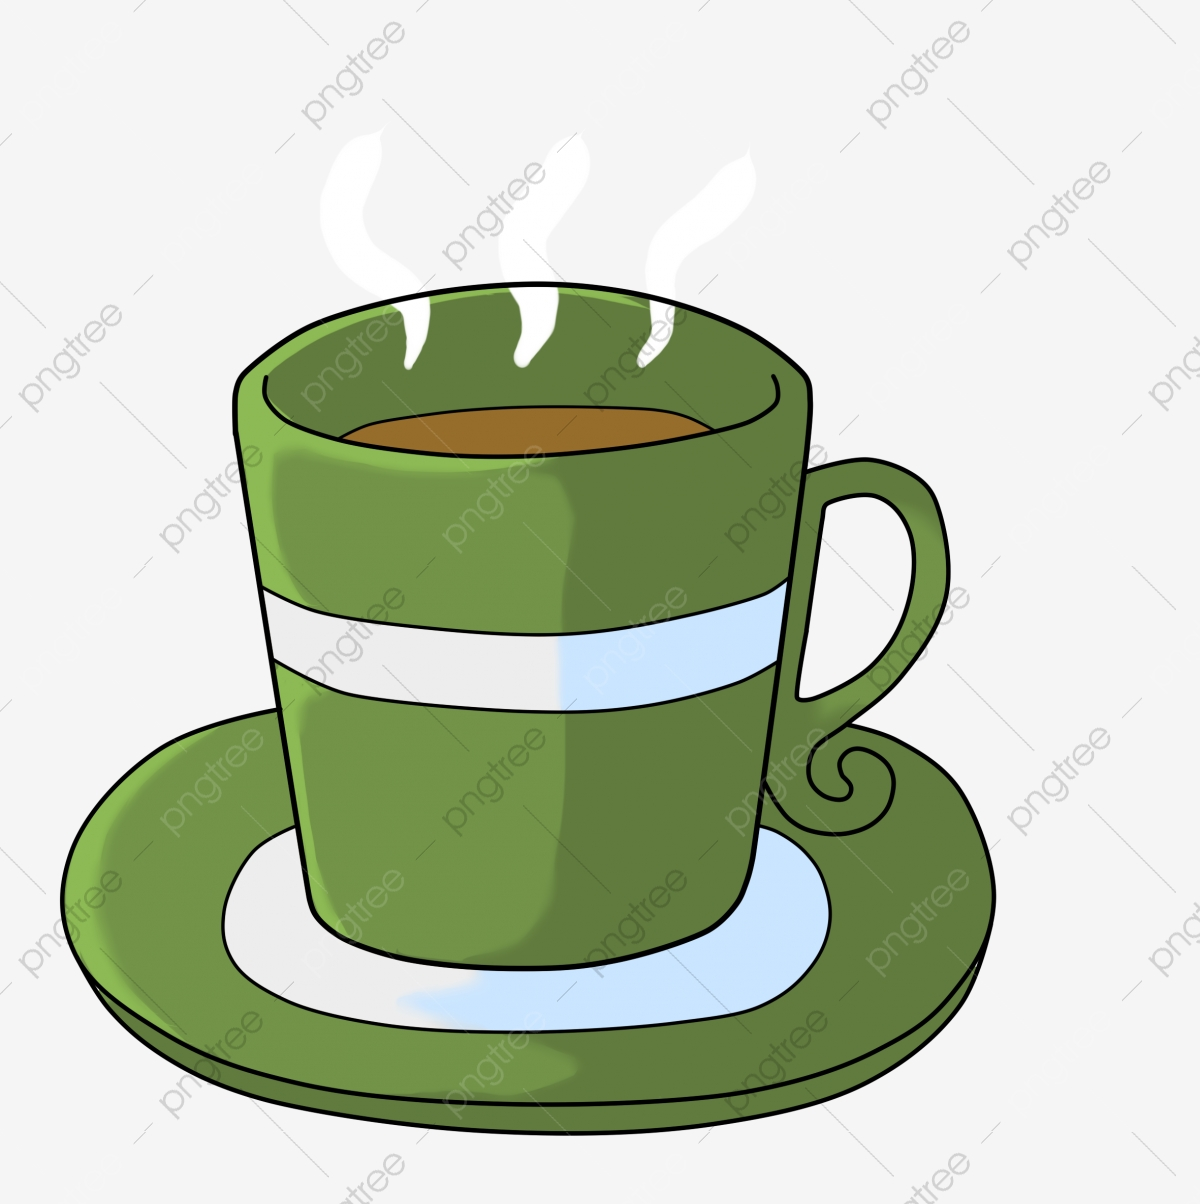 Cup Green Teacup Plate Tea, Coffee, Steaming, Color PNG ...